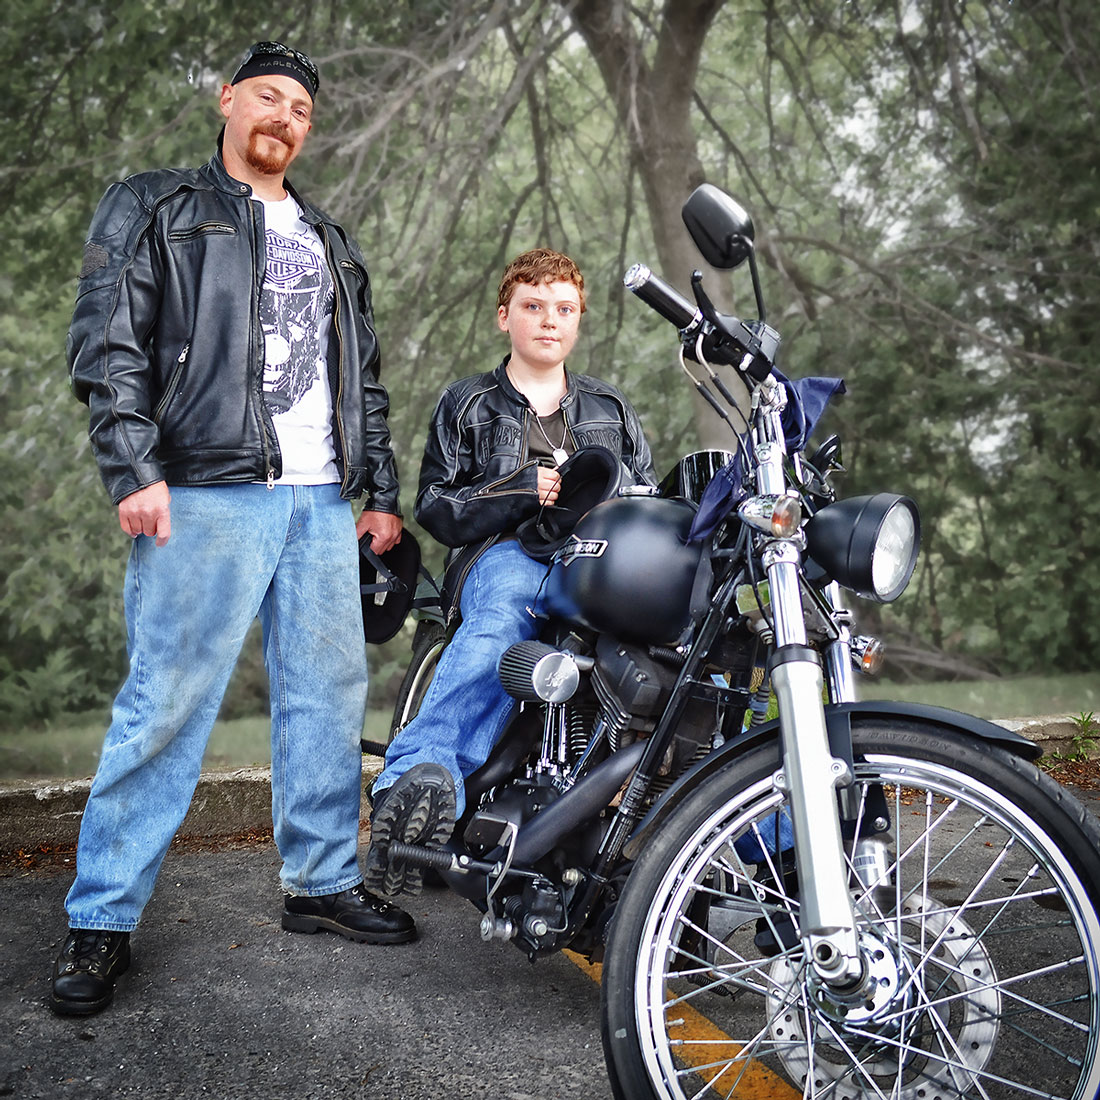 man with little brother on motorbike